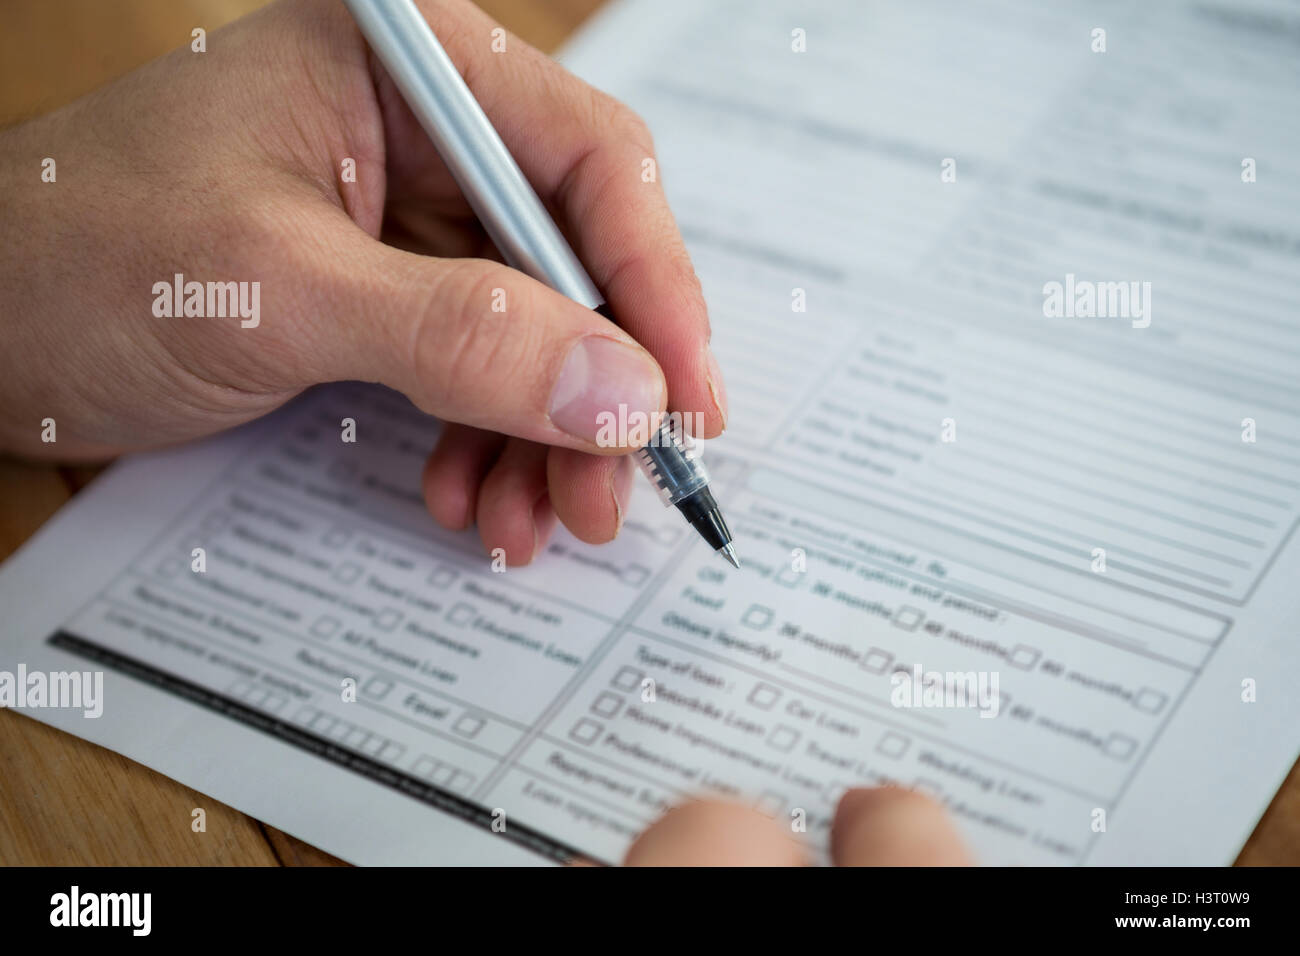 Businesswoman Filling Last Will And Testament Form - Stock Image